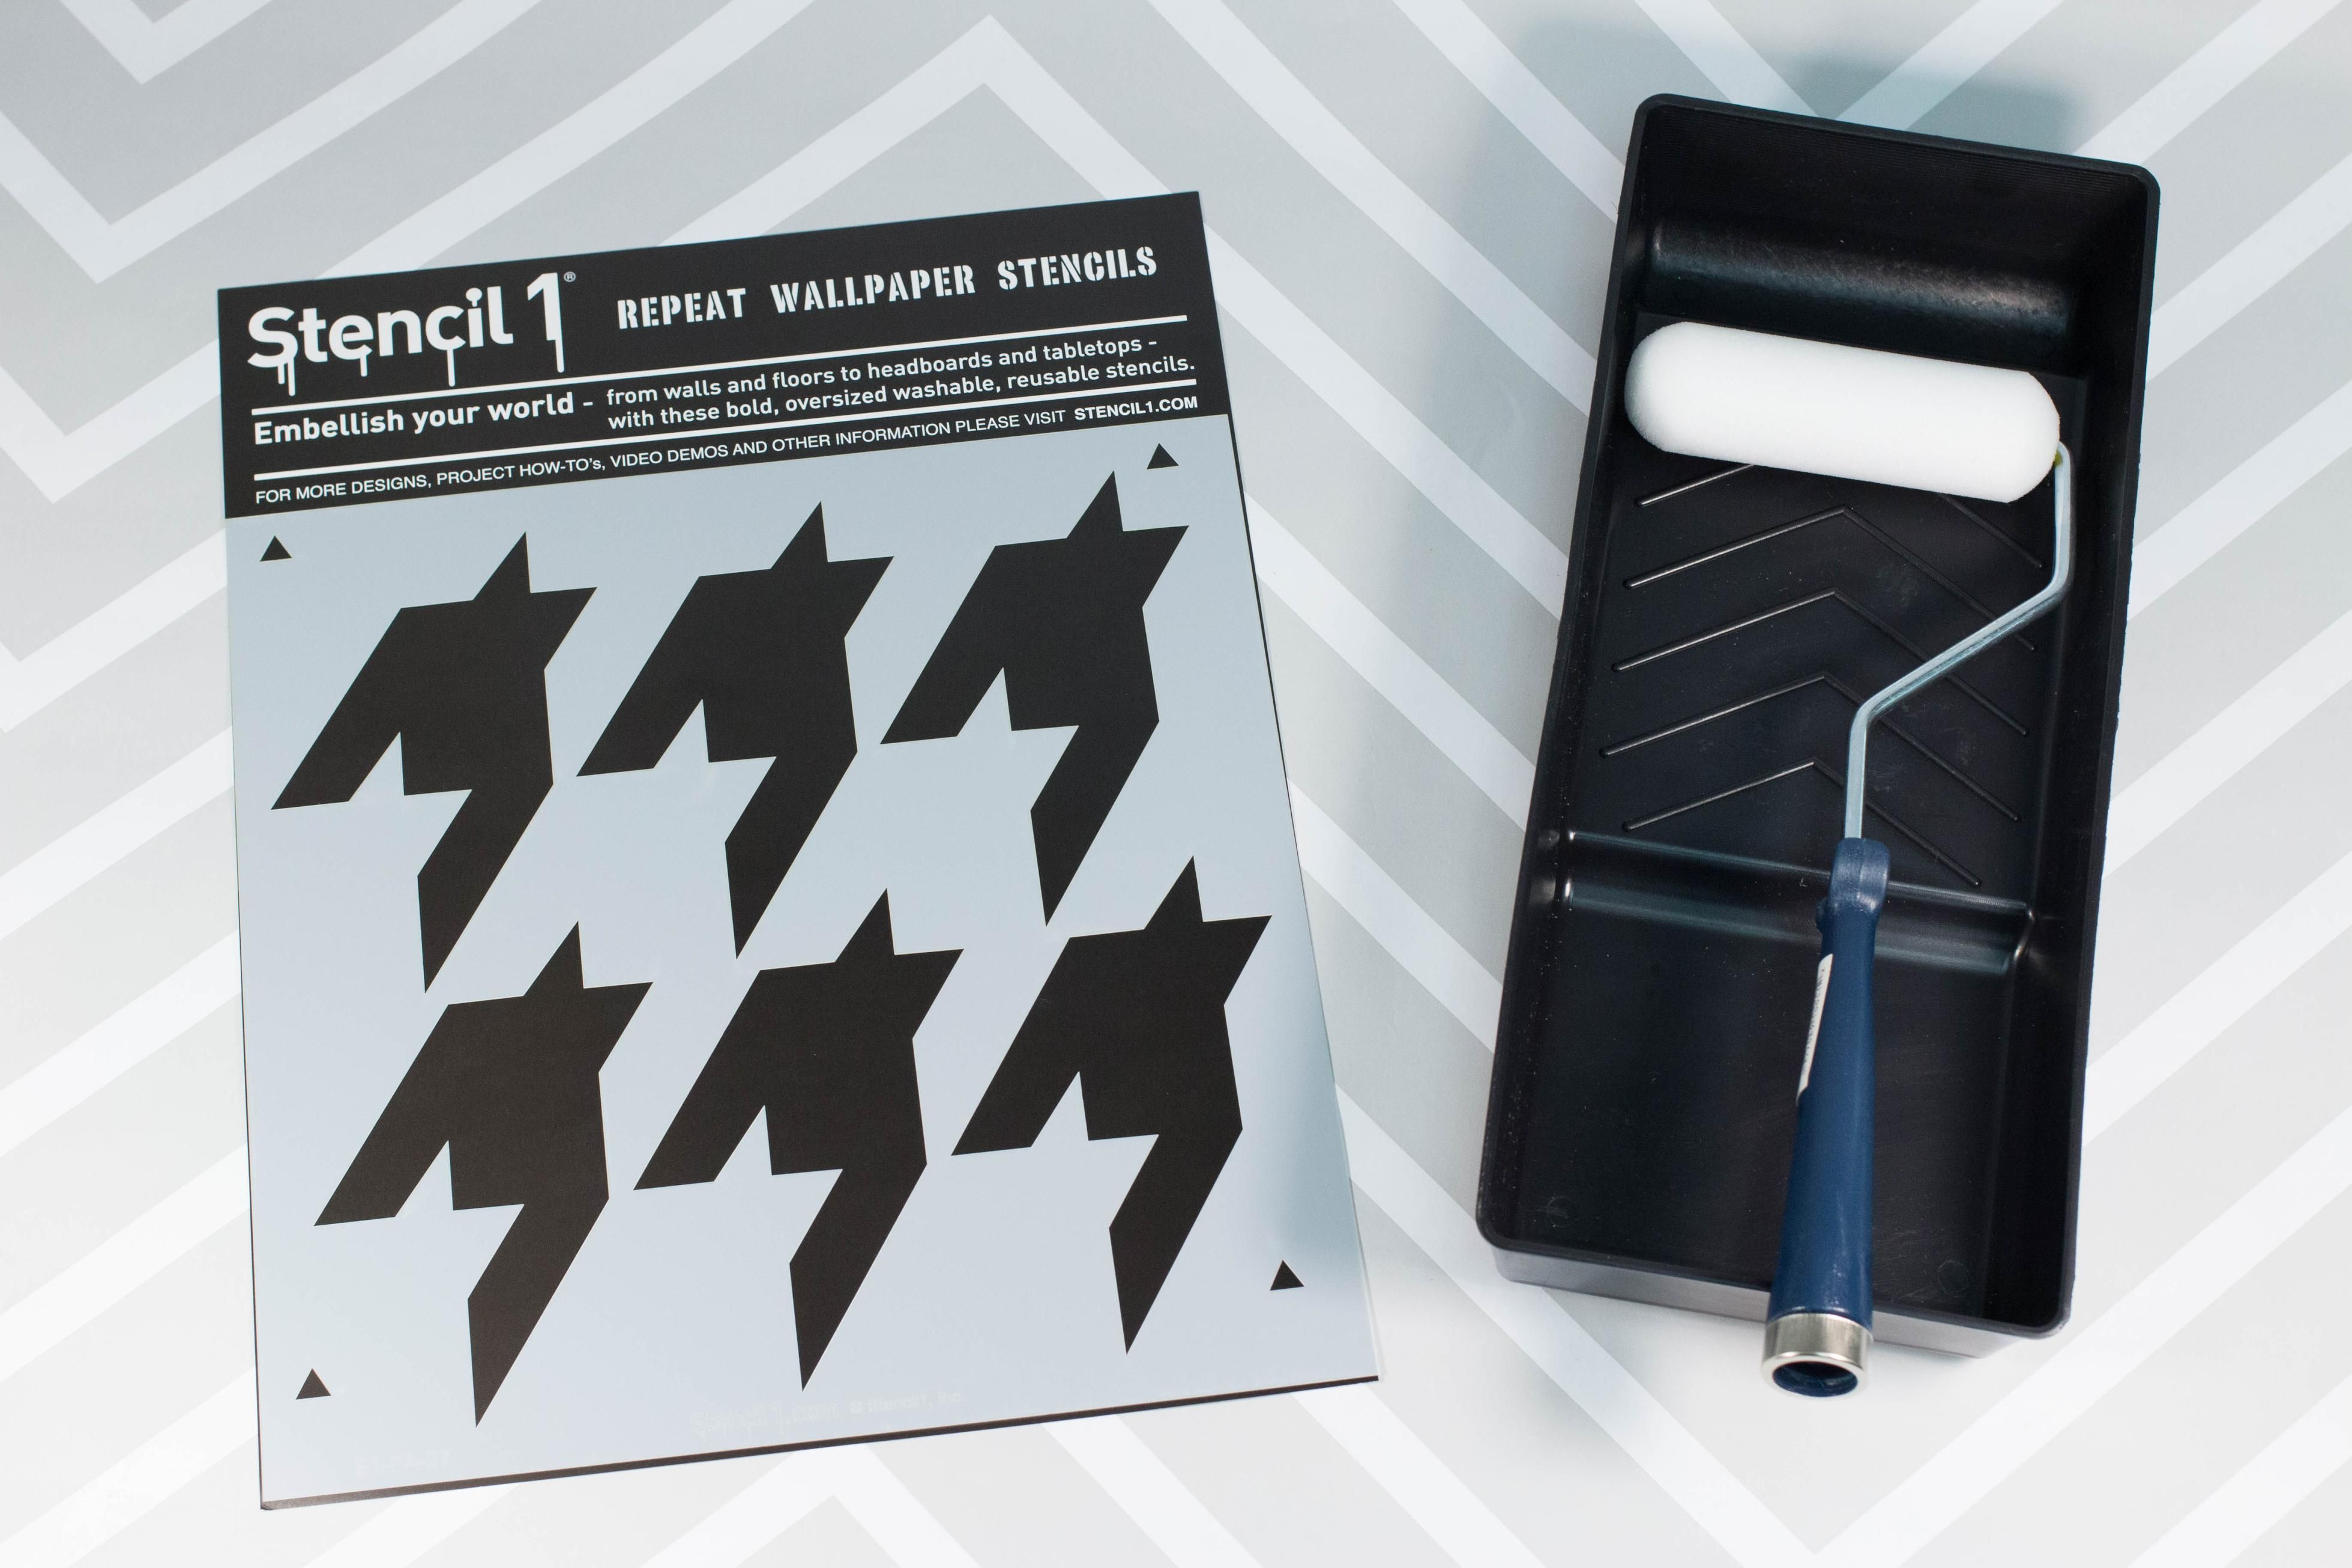 Win a stencil1 houndstooth wall stencil and paint roller set win a stencil1 houndstooth wall stencil and paint roller set amipublicfo Image collections